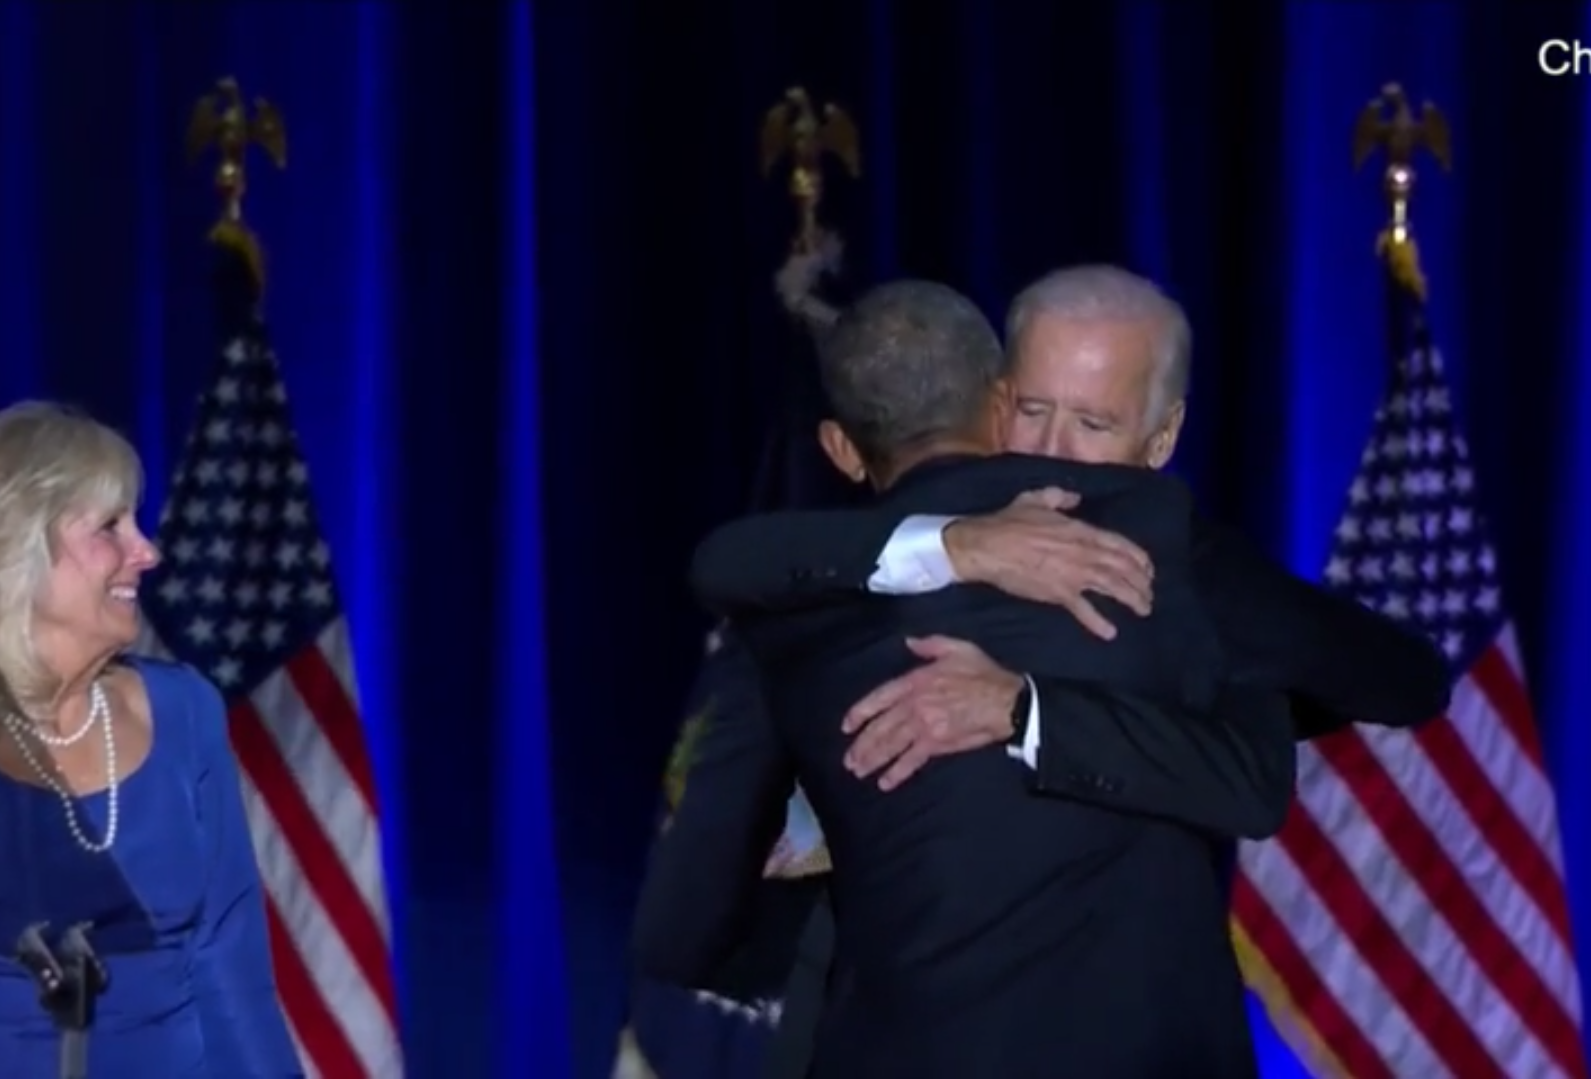 Obama and Biden hug after Obama's farewell address